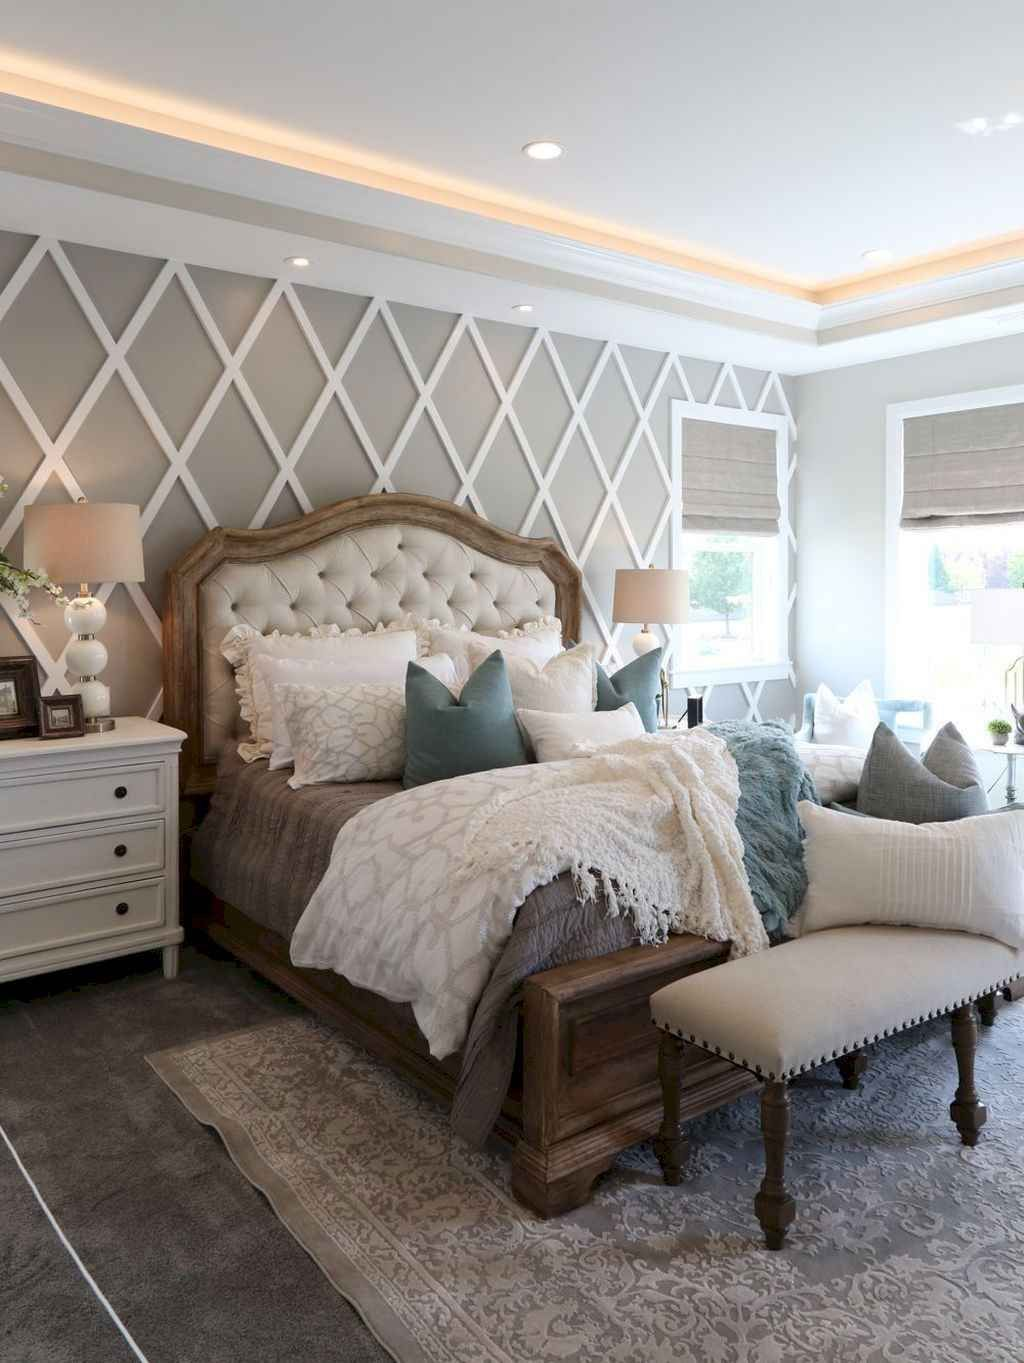 56 Modern Farmhouse Bedroom Ideas Gladecor Com Home Decor Bedroom Master Bedrooms Decor Country Bedroom Design